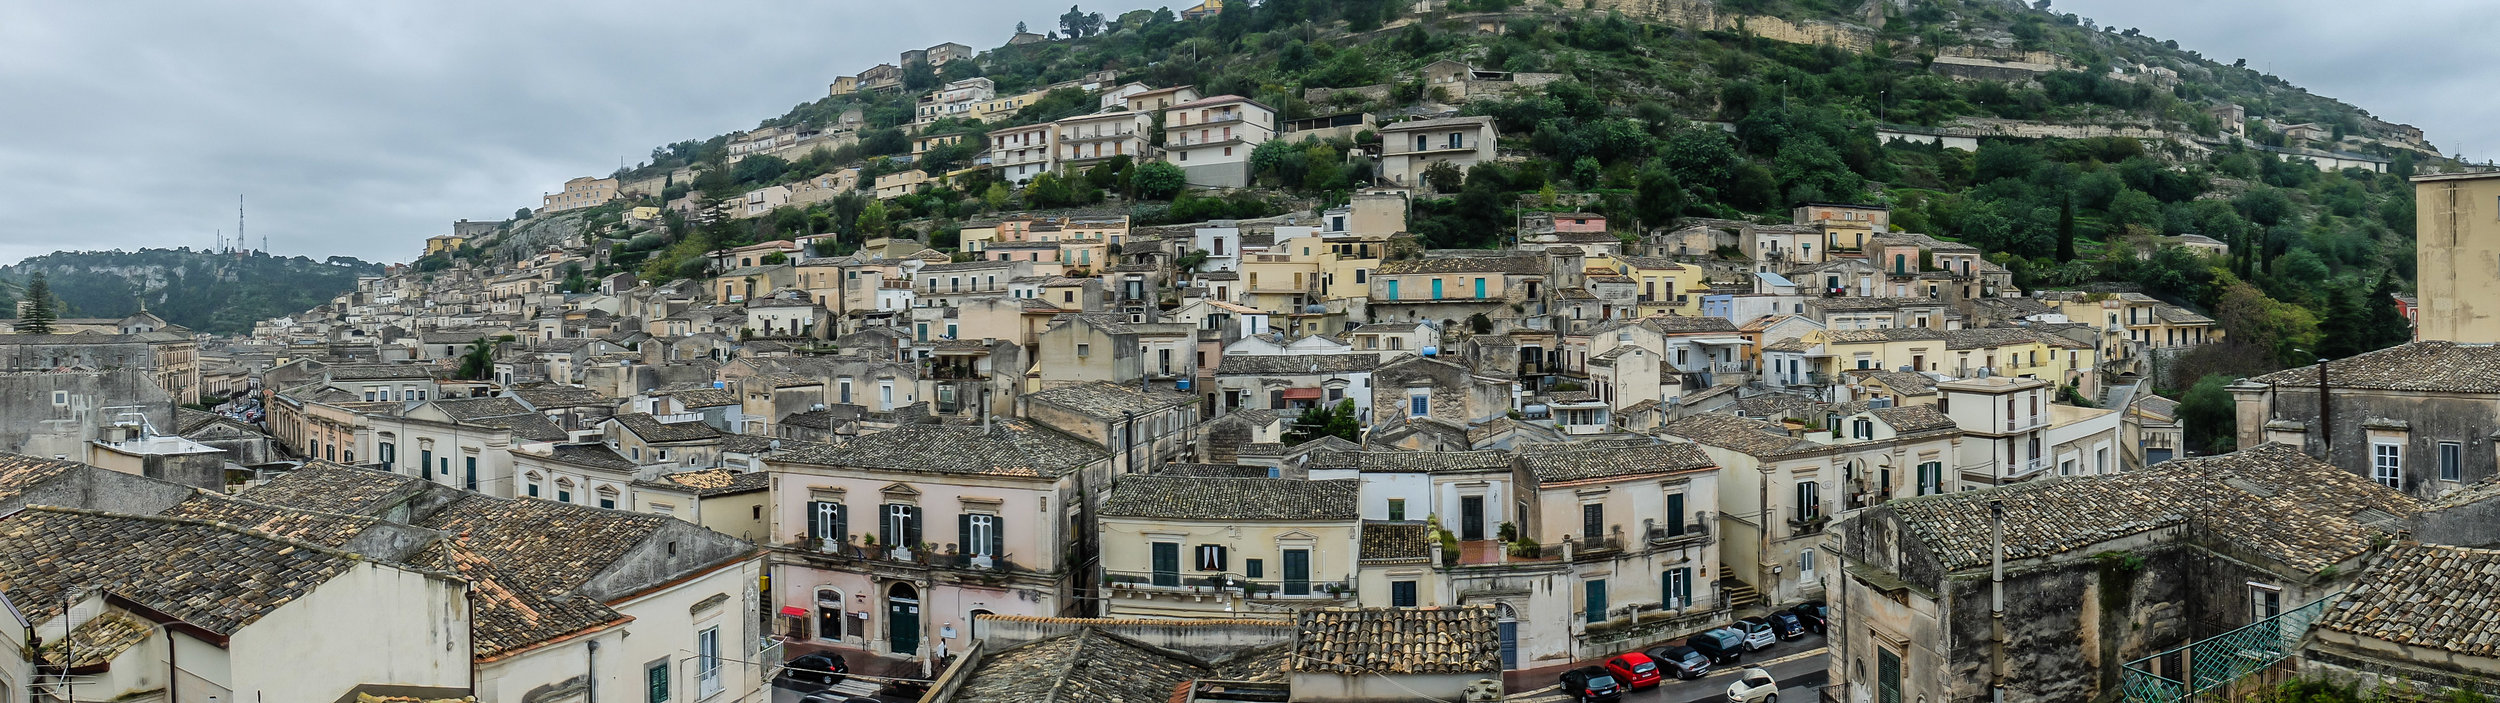 The hillside town of Modica, Italy